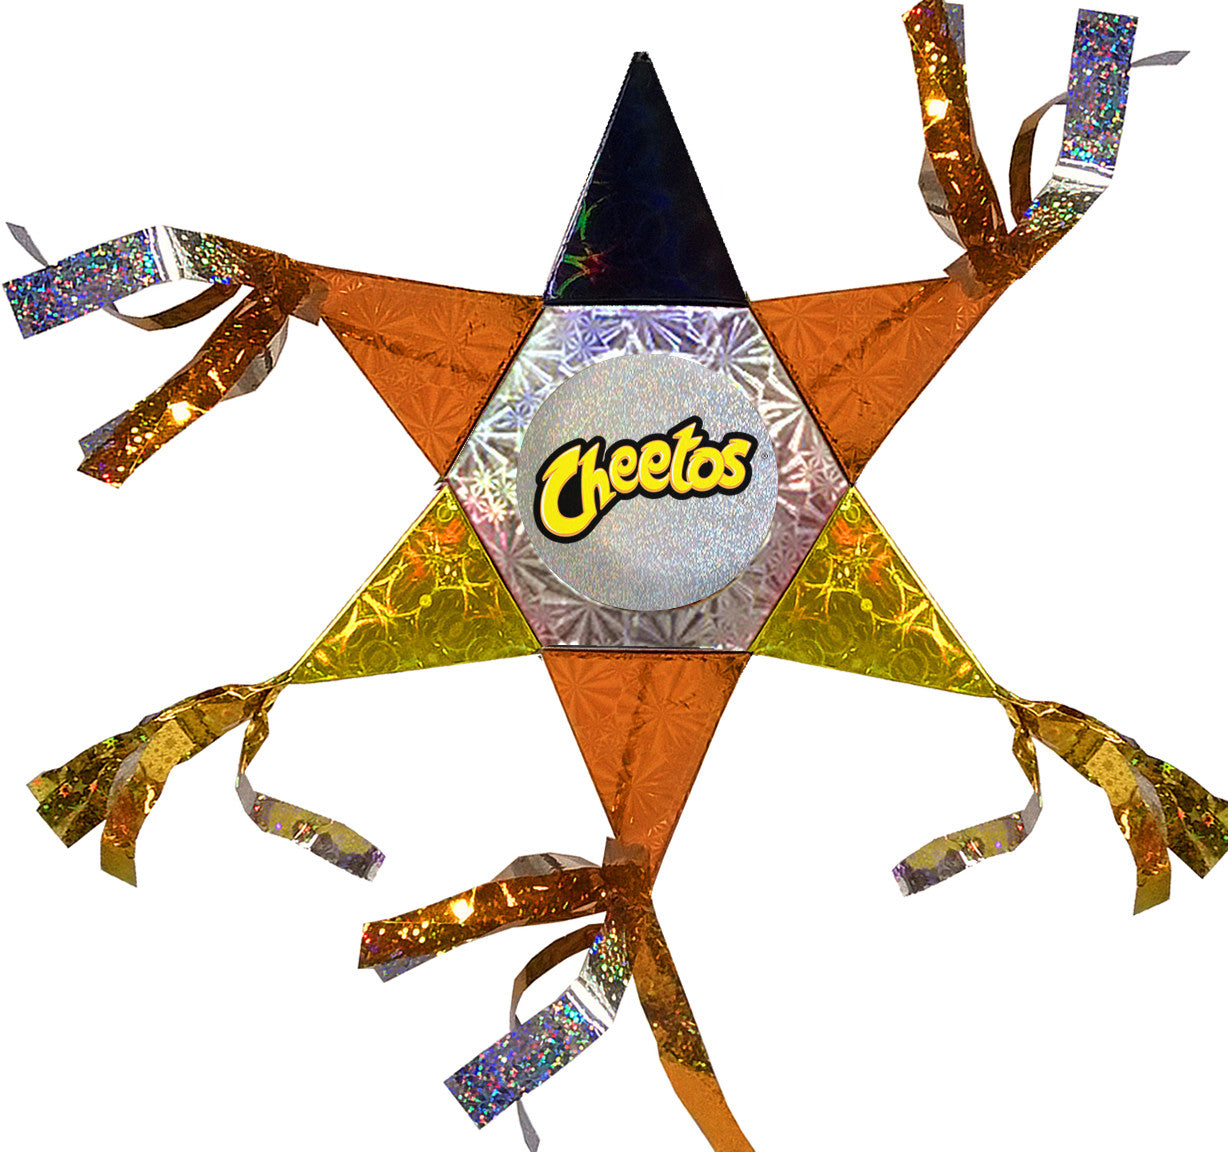 Cheetos Mini Star Promotional Pinata